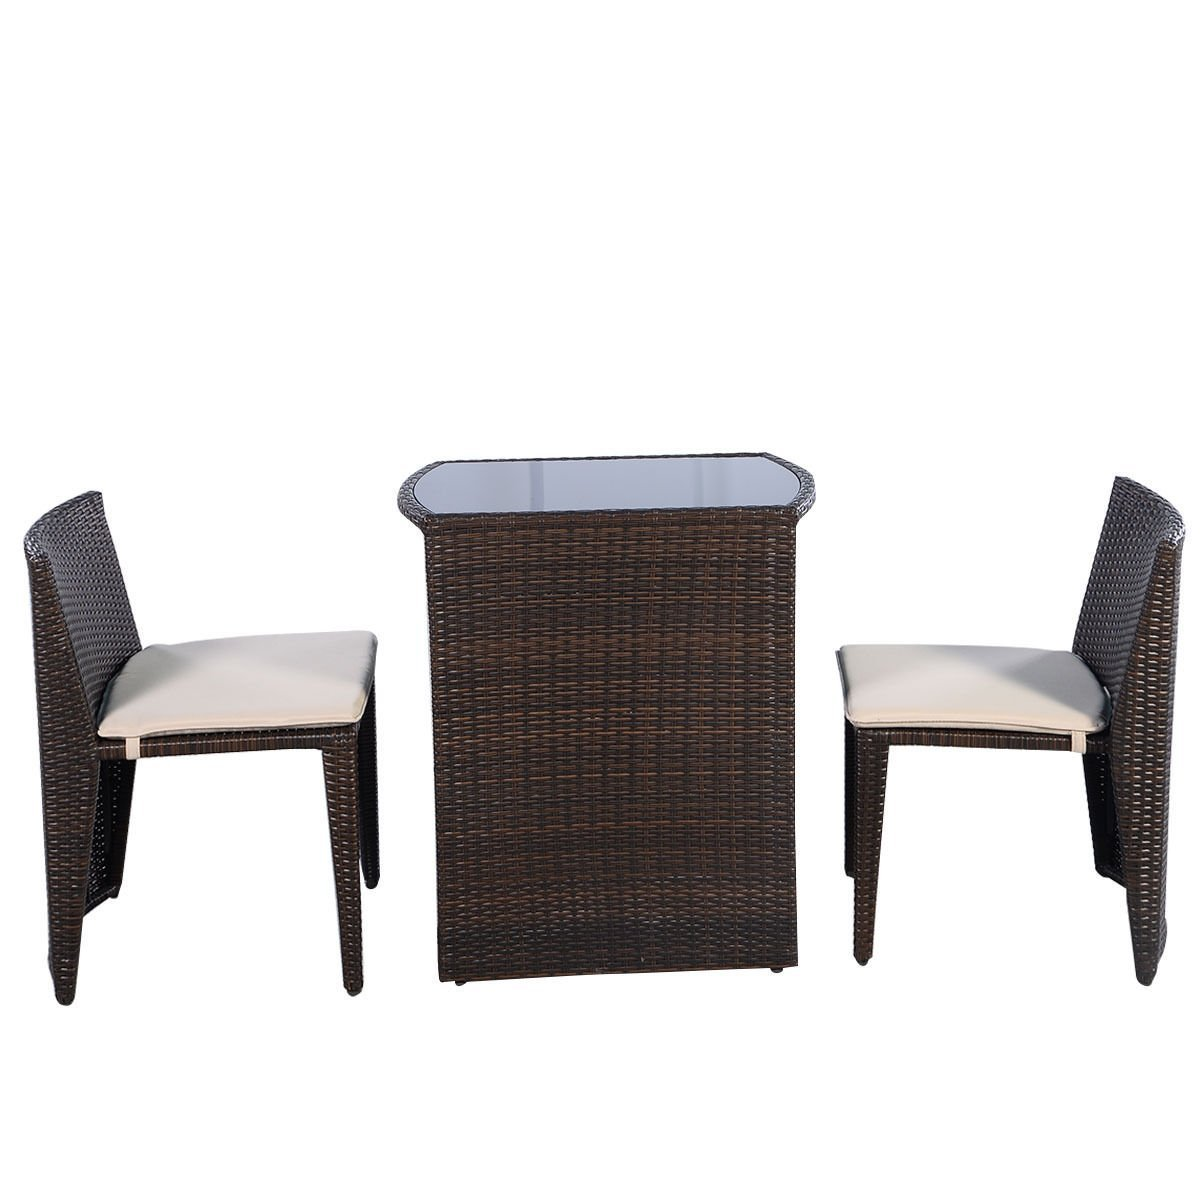 Get Quotations · Outdoor Patio Furniture Wicker 3pc Bistro Set W/ Glass Top  Table, 2 Chairs